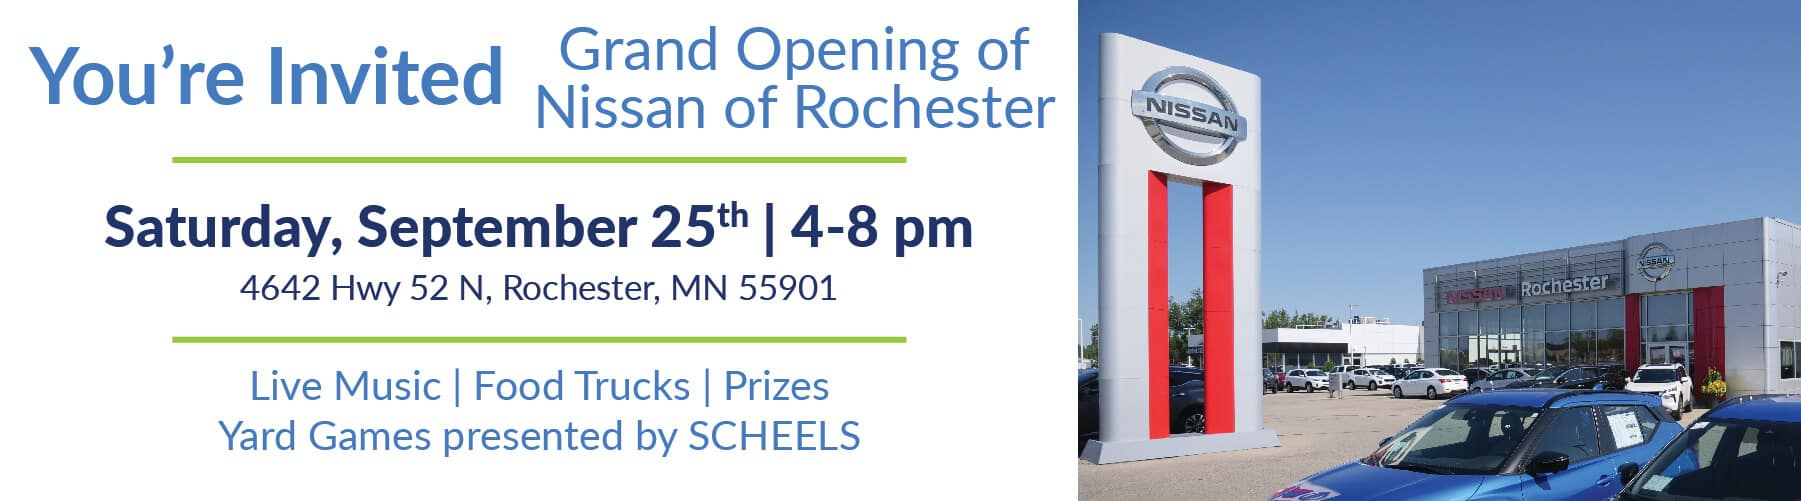 grand opening Nissan of Rochester